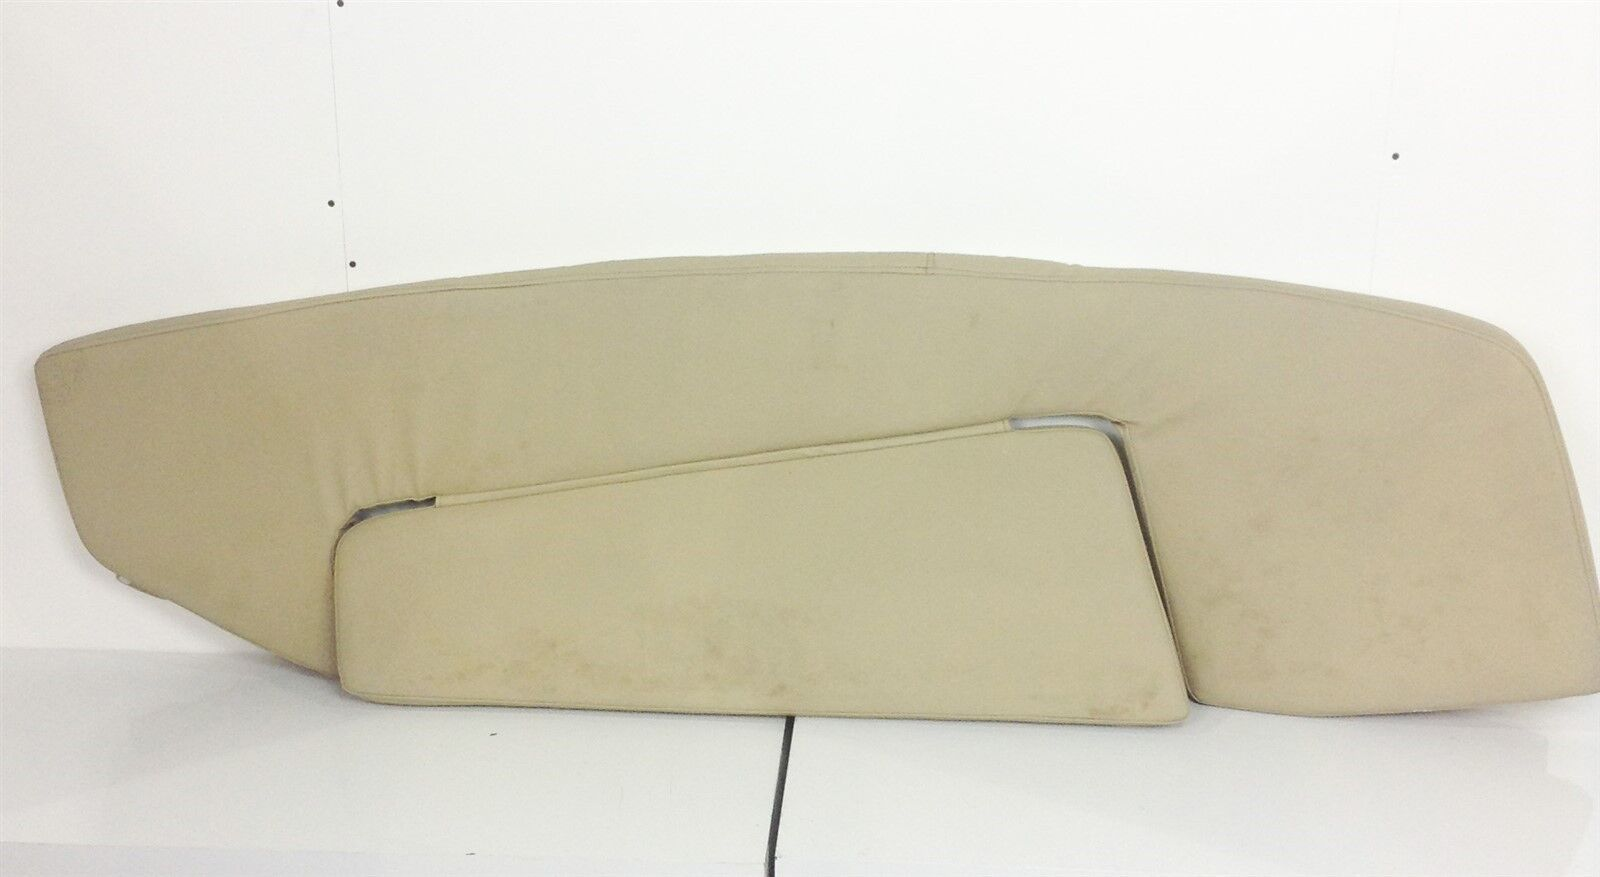 Tidewater 320 CC Starboard Side Bow Cushion Tan W/ Dents And A Small Tear Boat